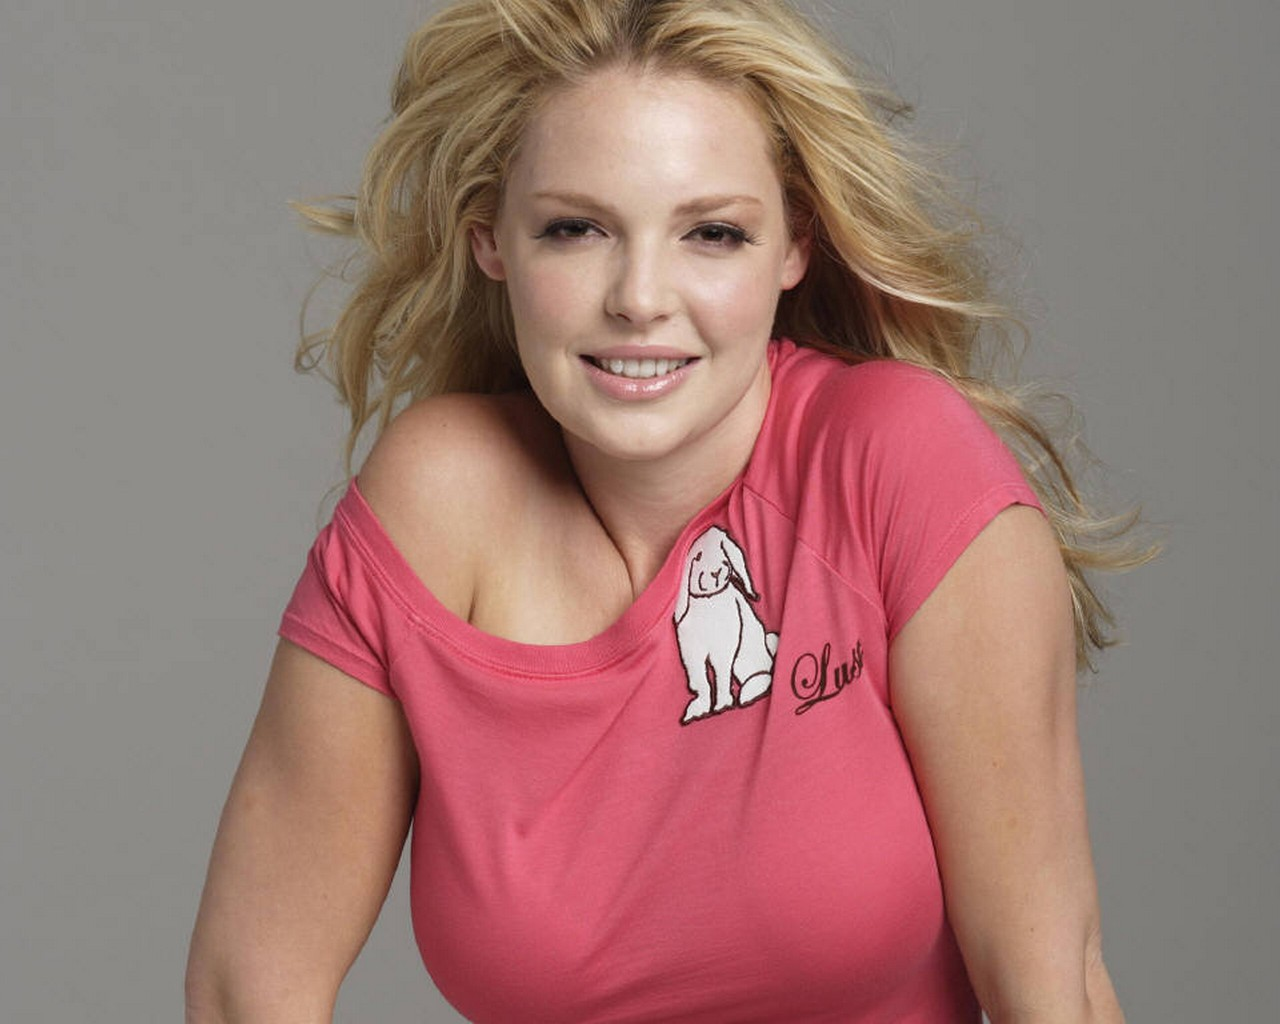 ALL ABOUT HOLLYWOOD STARS: Katherine Heigl Profile And Pics